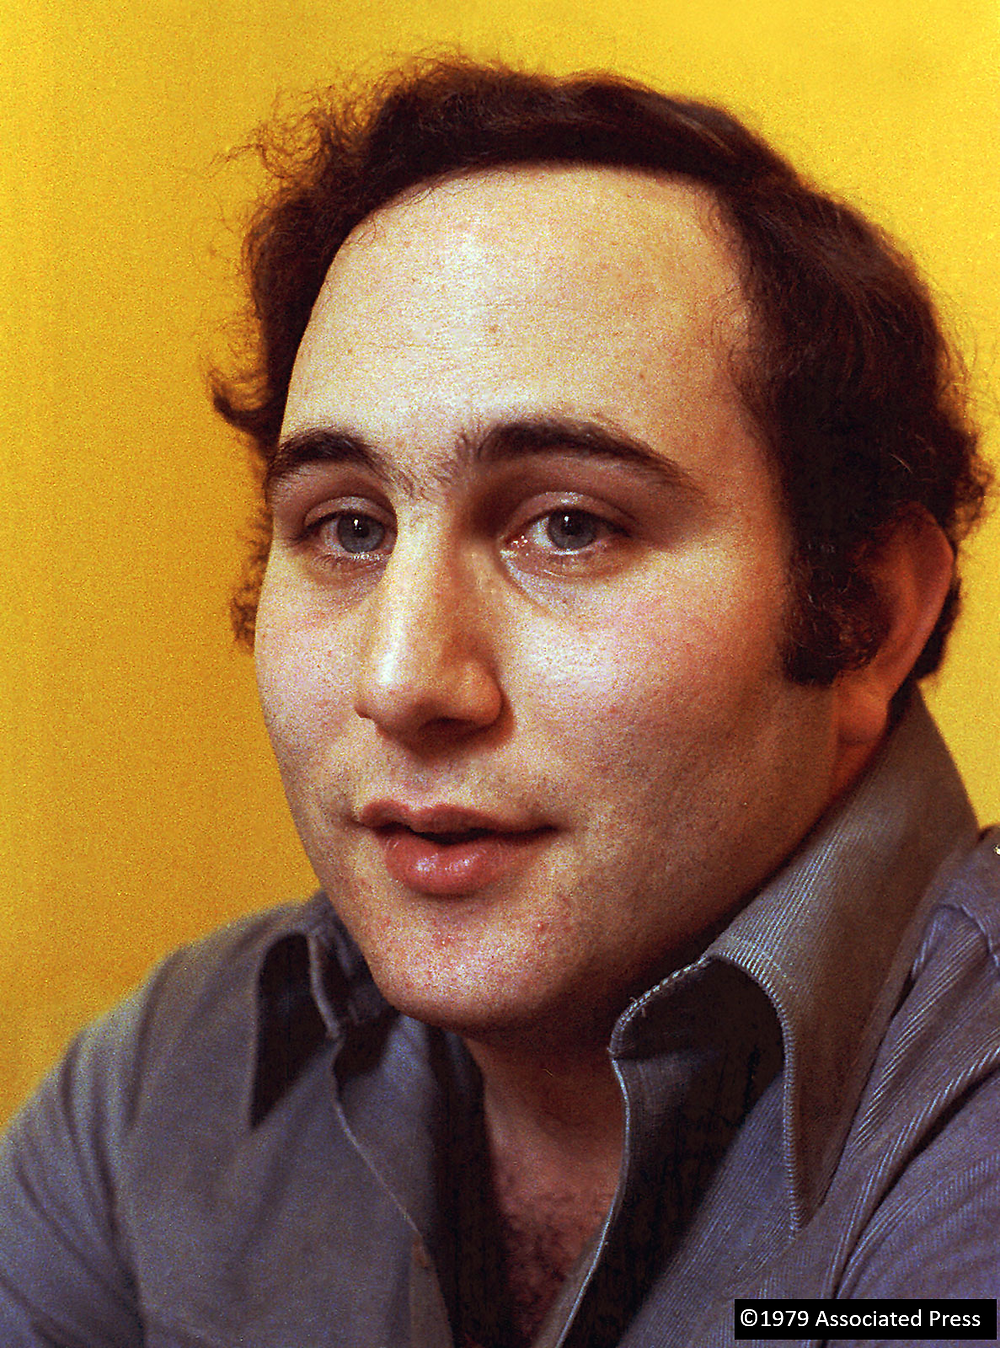 David Berkowitz Son of Sam killed six people injured seven caused by demonic voices resentment to women psychological theories playing a major role